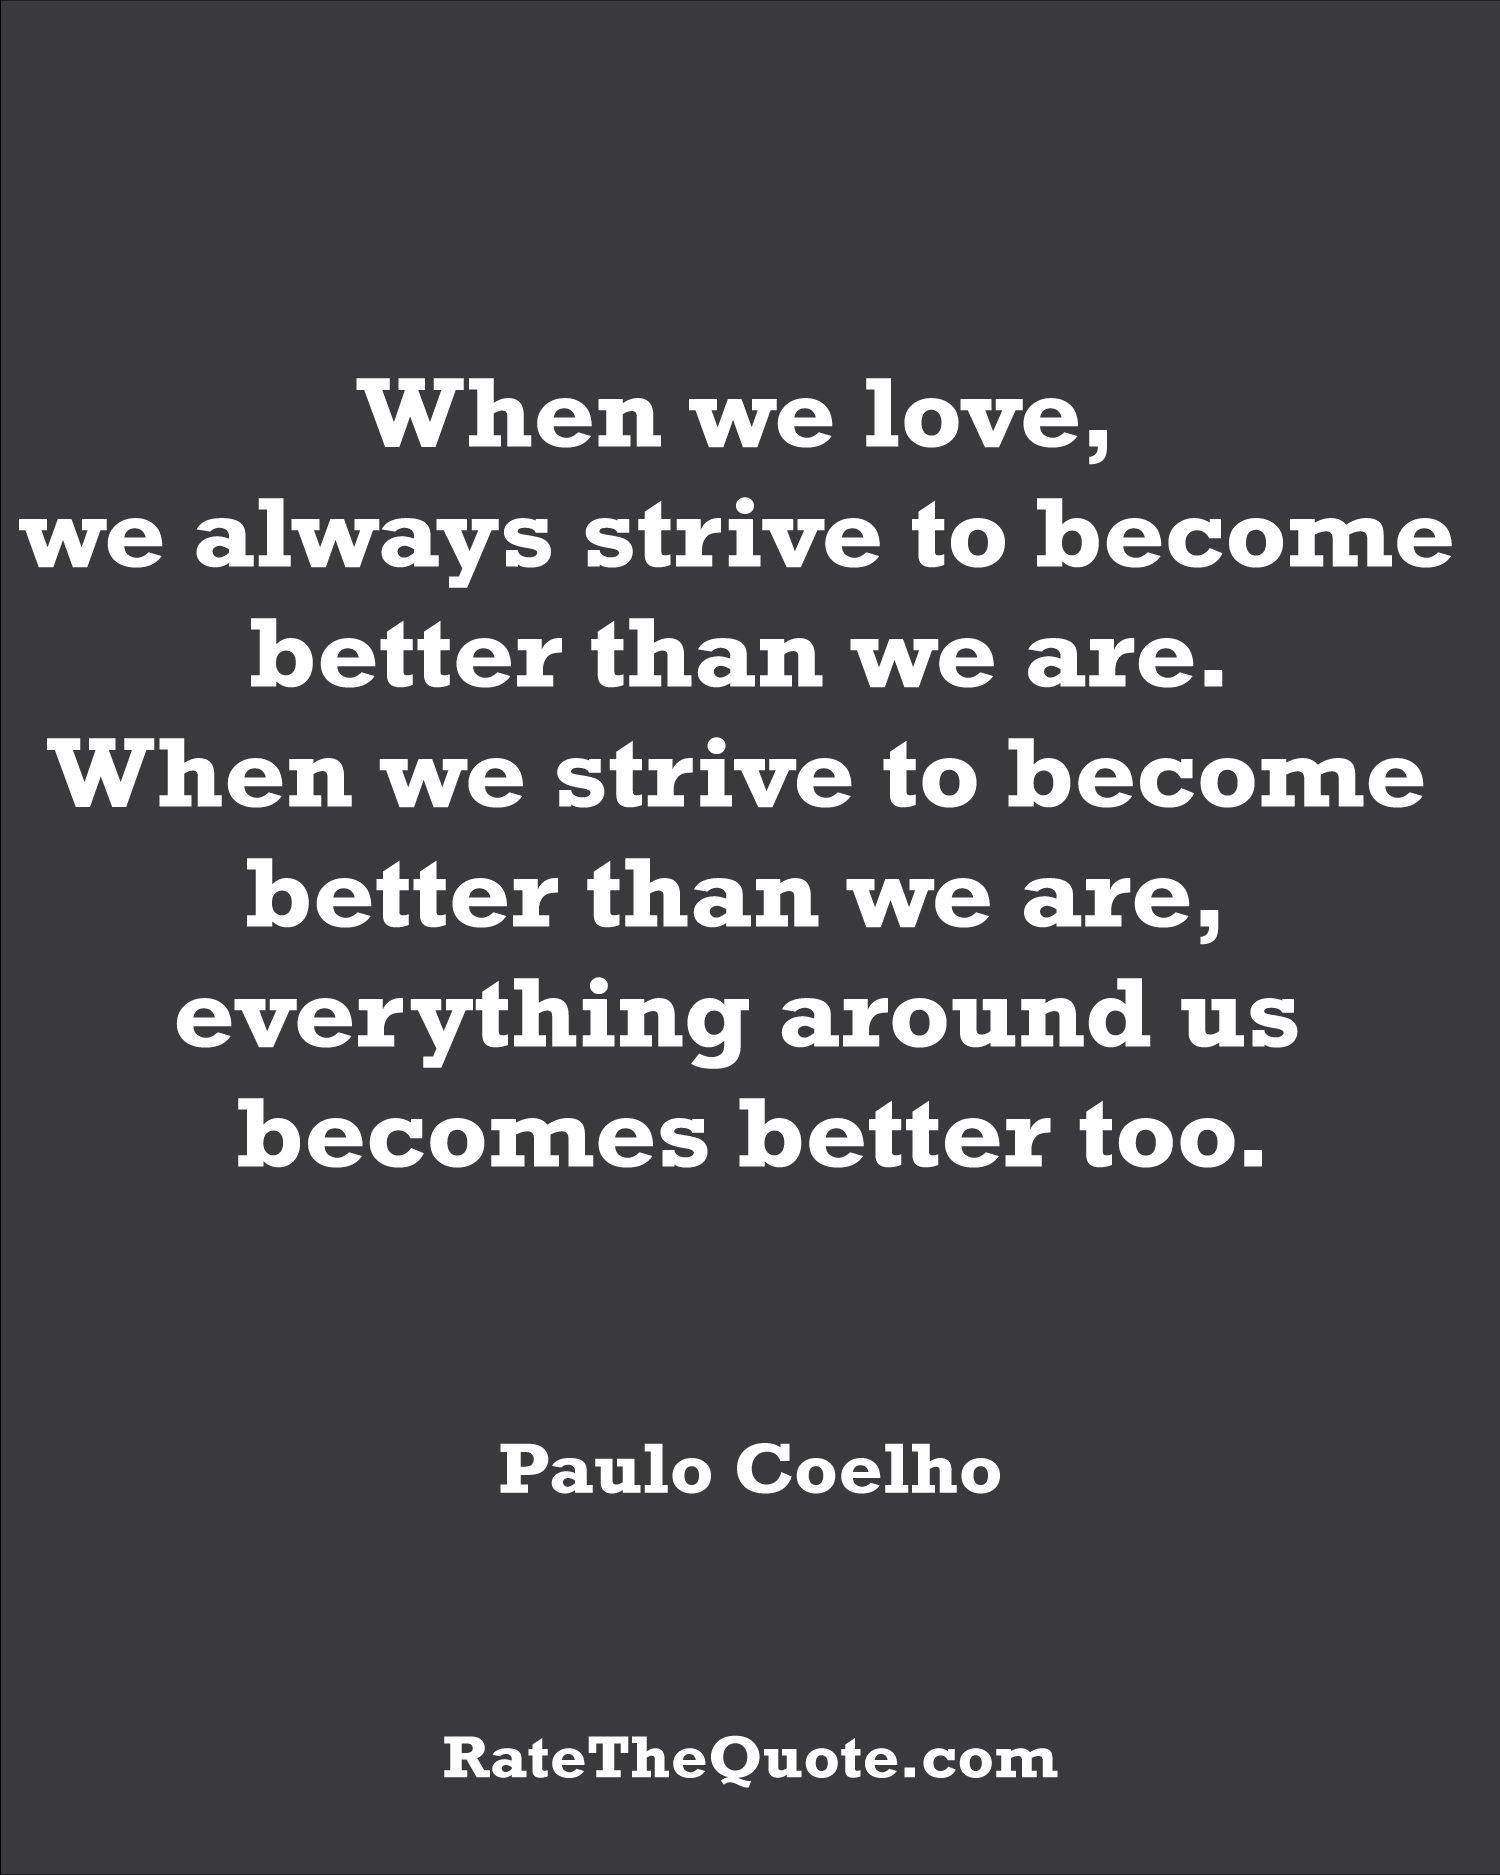 Paulo Coelho Quote Paulo Coelho Quote : When we love, we always strive to become better than we are. When we strive to become better than we are, everything around us becomes better too.